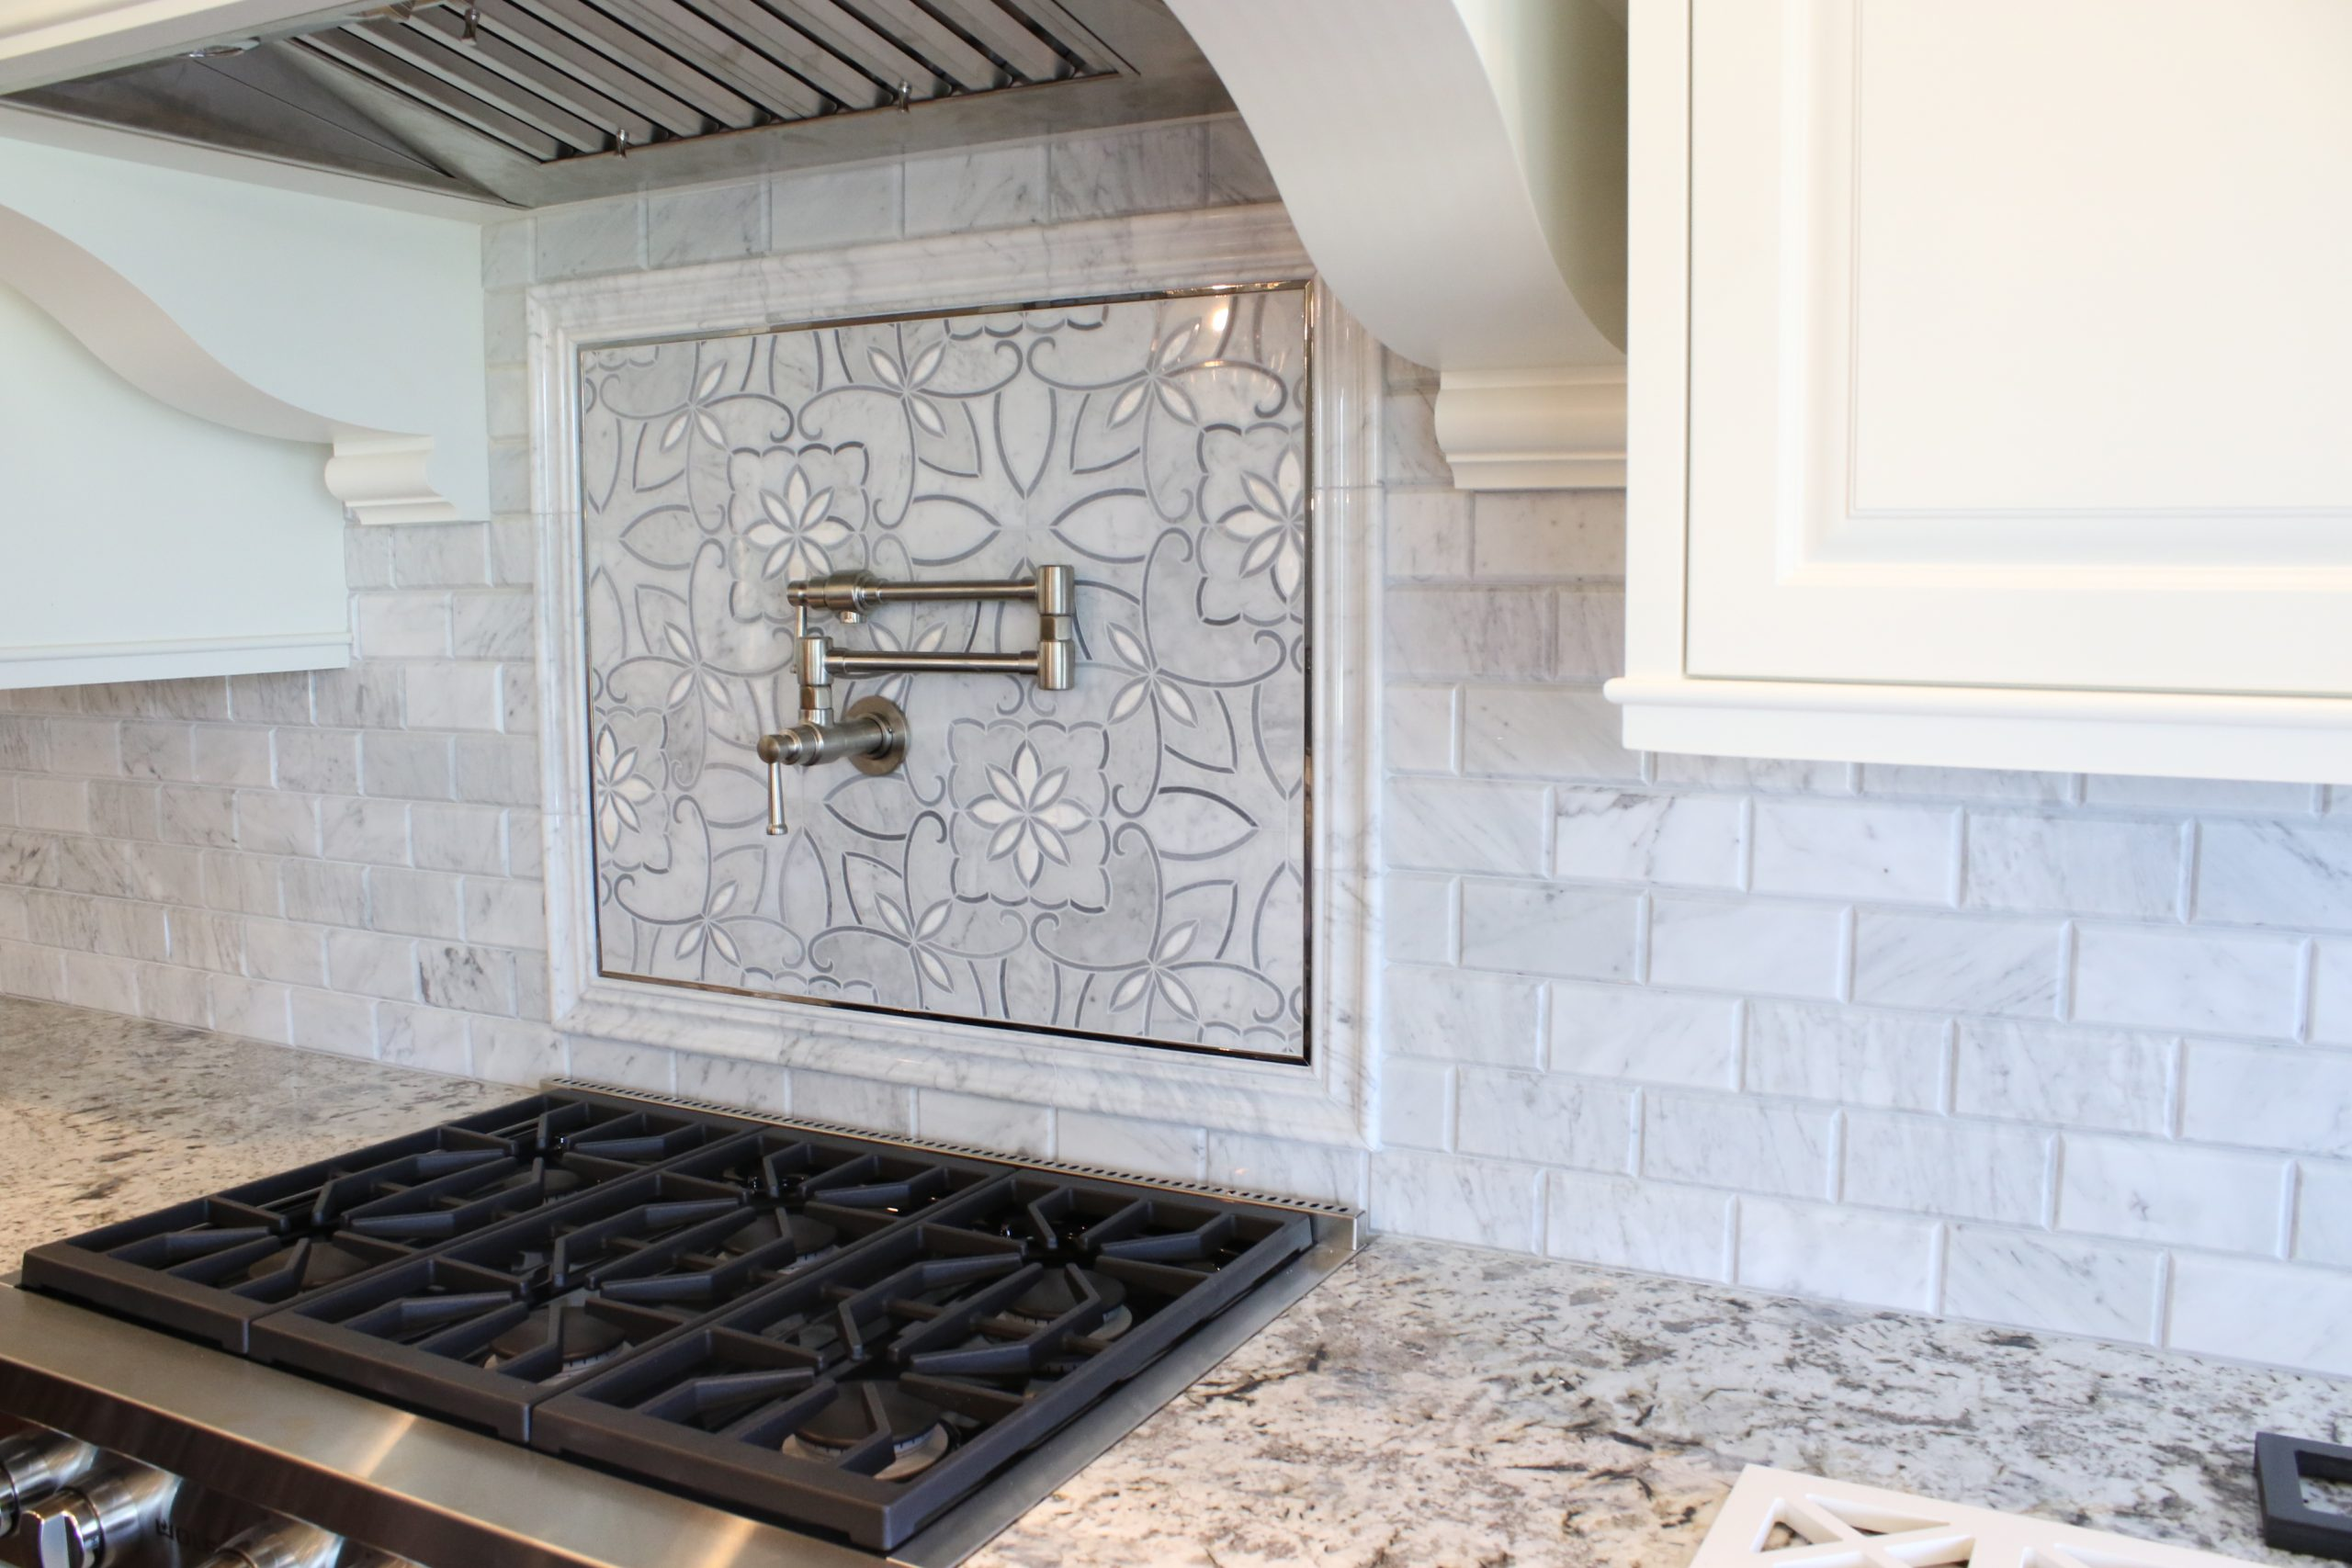 A more traditional aesthetic means more traditional wood molding of course, but that doesn't mean it can't have some softer tones, such as the flower backsplash above the stove.